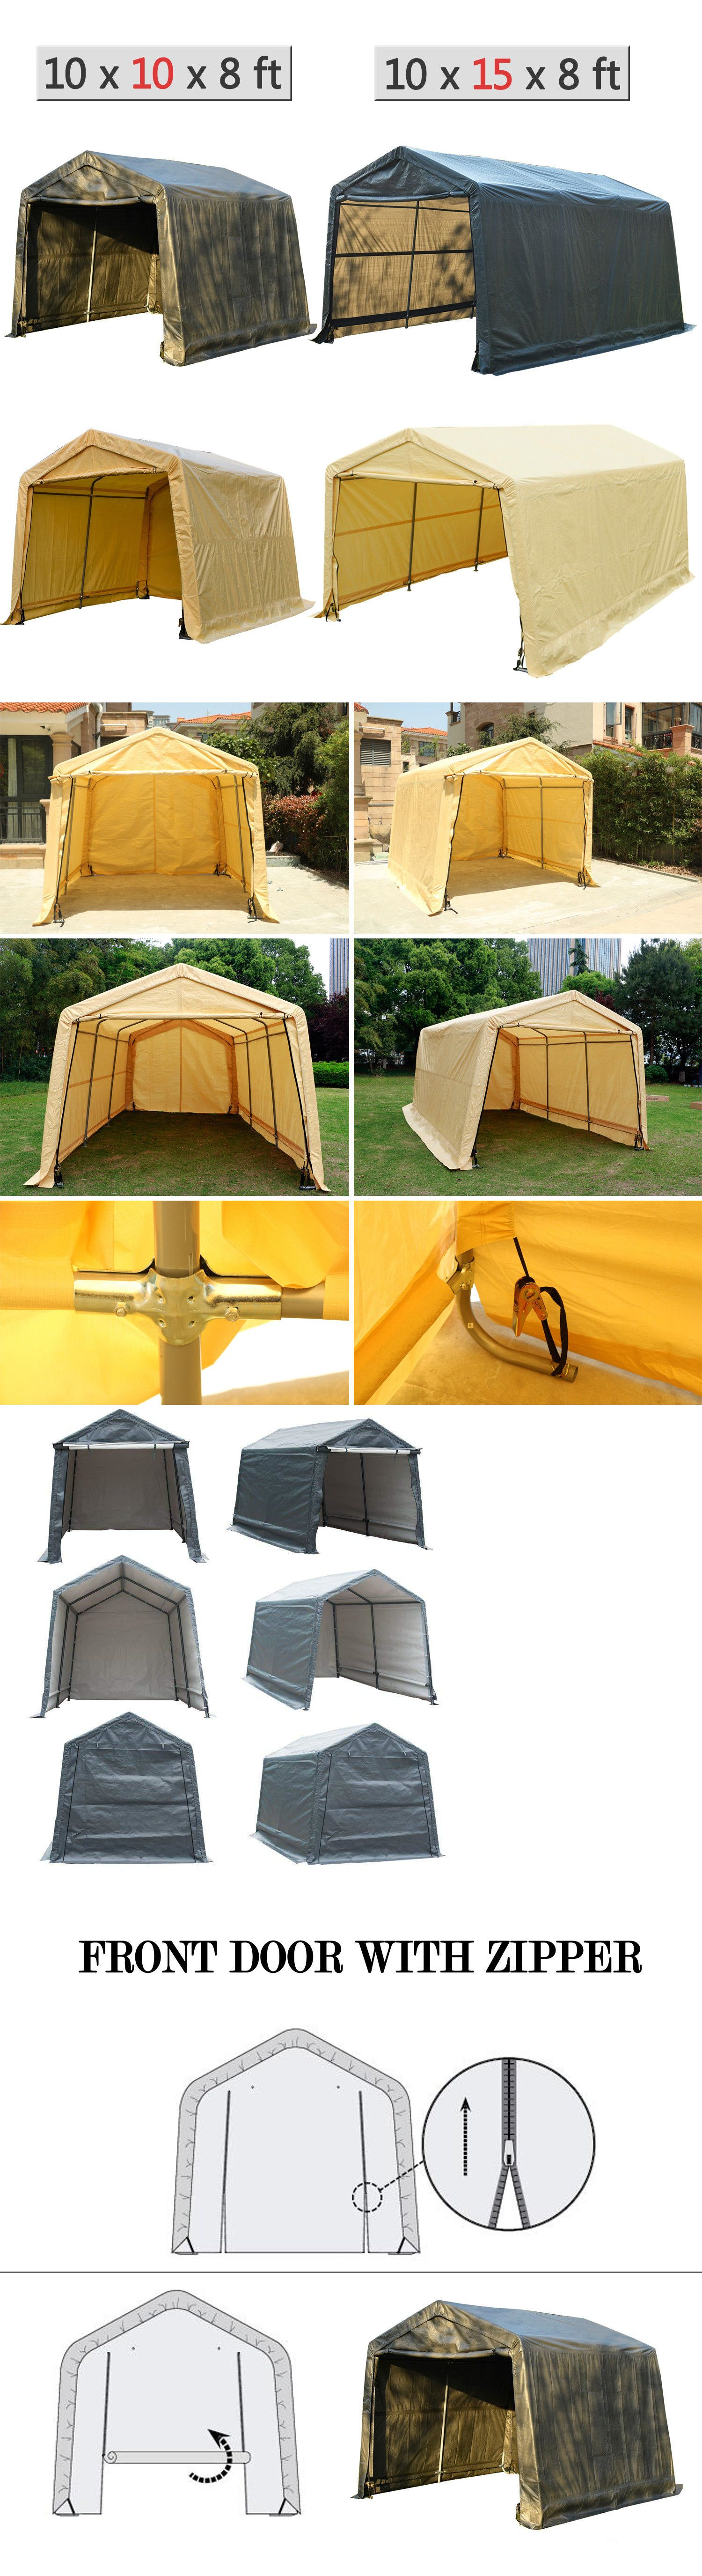 Canopy Carport Tent Auto Shelter Car Storage Shed Cover Outdoor Awning Portable Carport Tent Storage Shed Outdoor Awnings